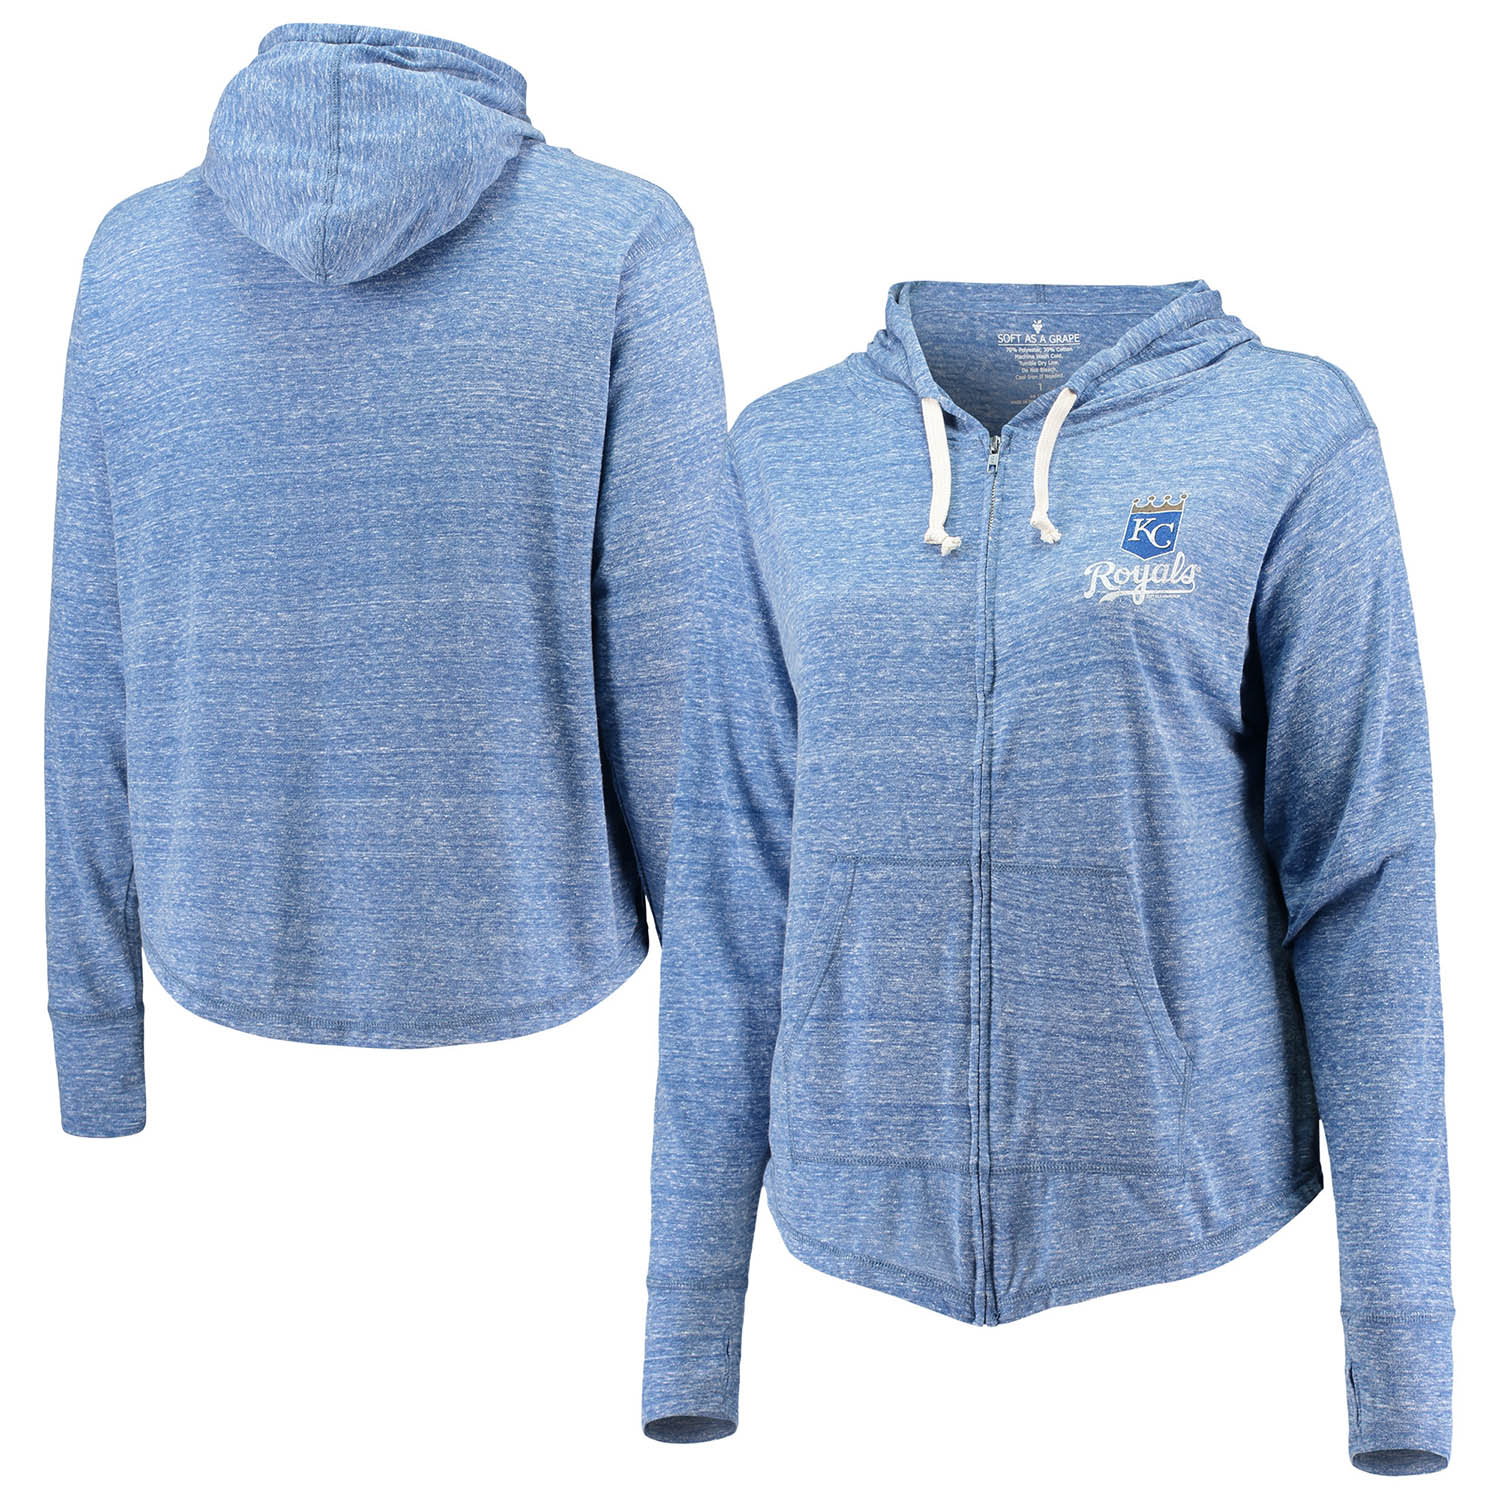 Kansas City Royals Soft as a Grape Women's Plus Size Full-Zip Hoodie - Royal